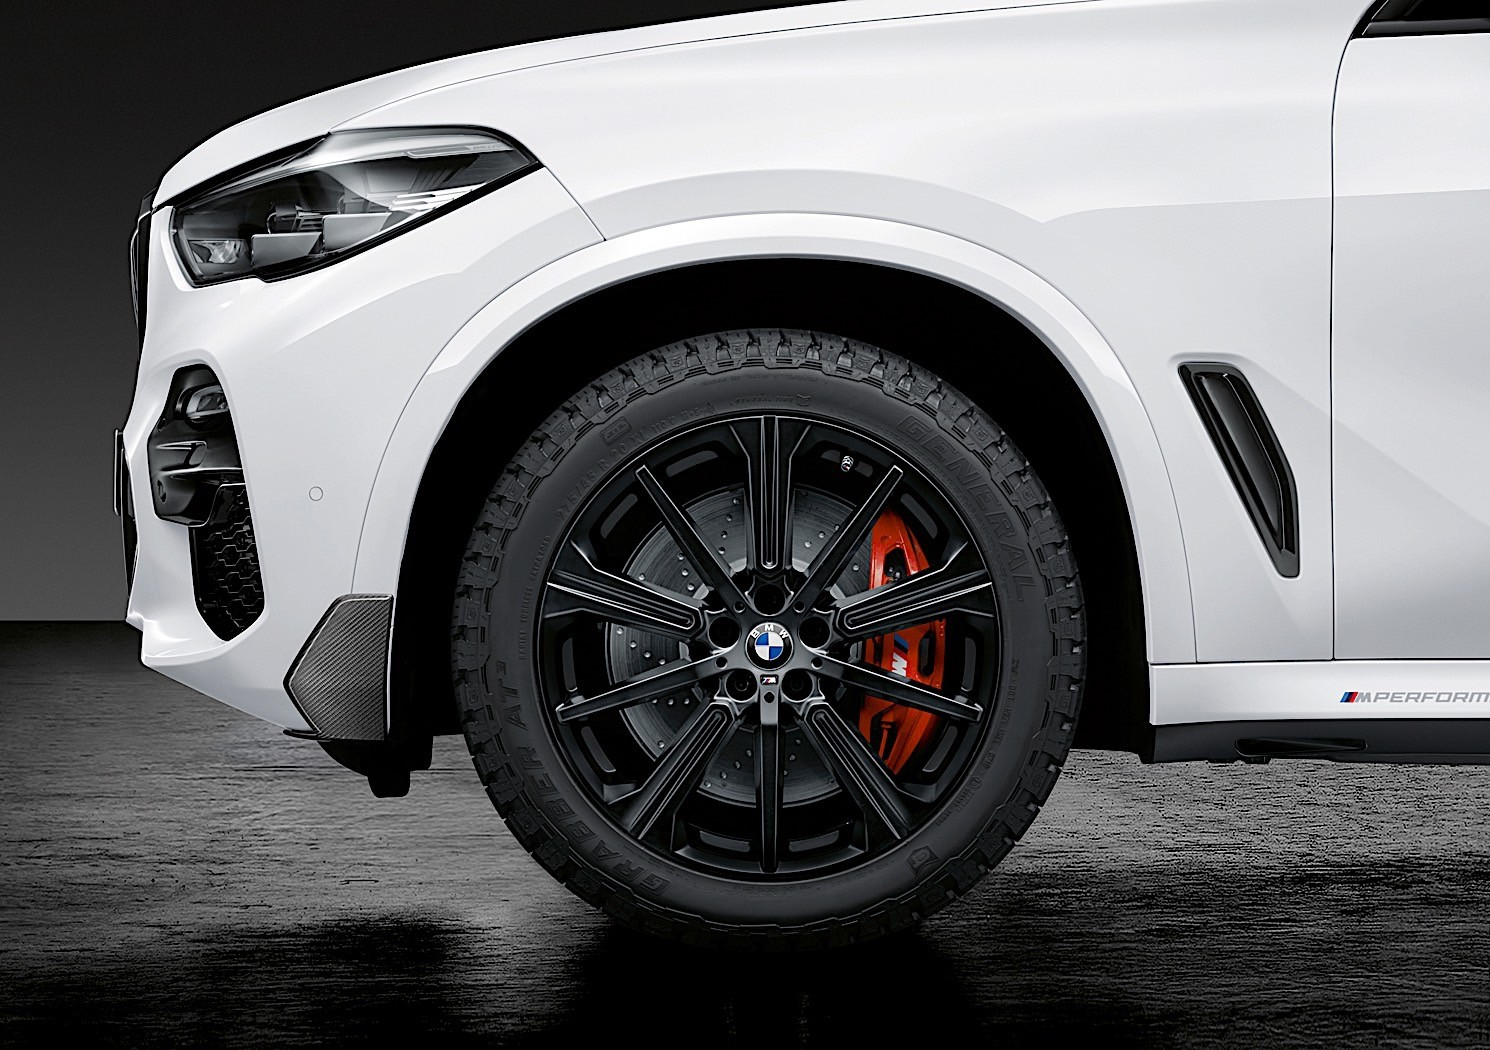 General At Tires >> 2019 BMW X5 M Performance Parts Are All About Driving Analysis and Carbon Fiber - autoevolution